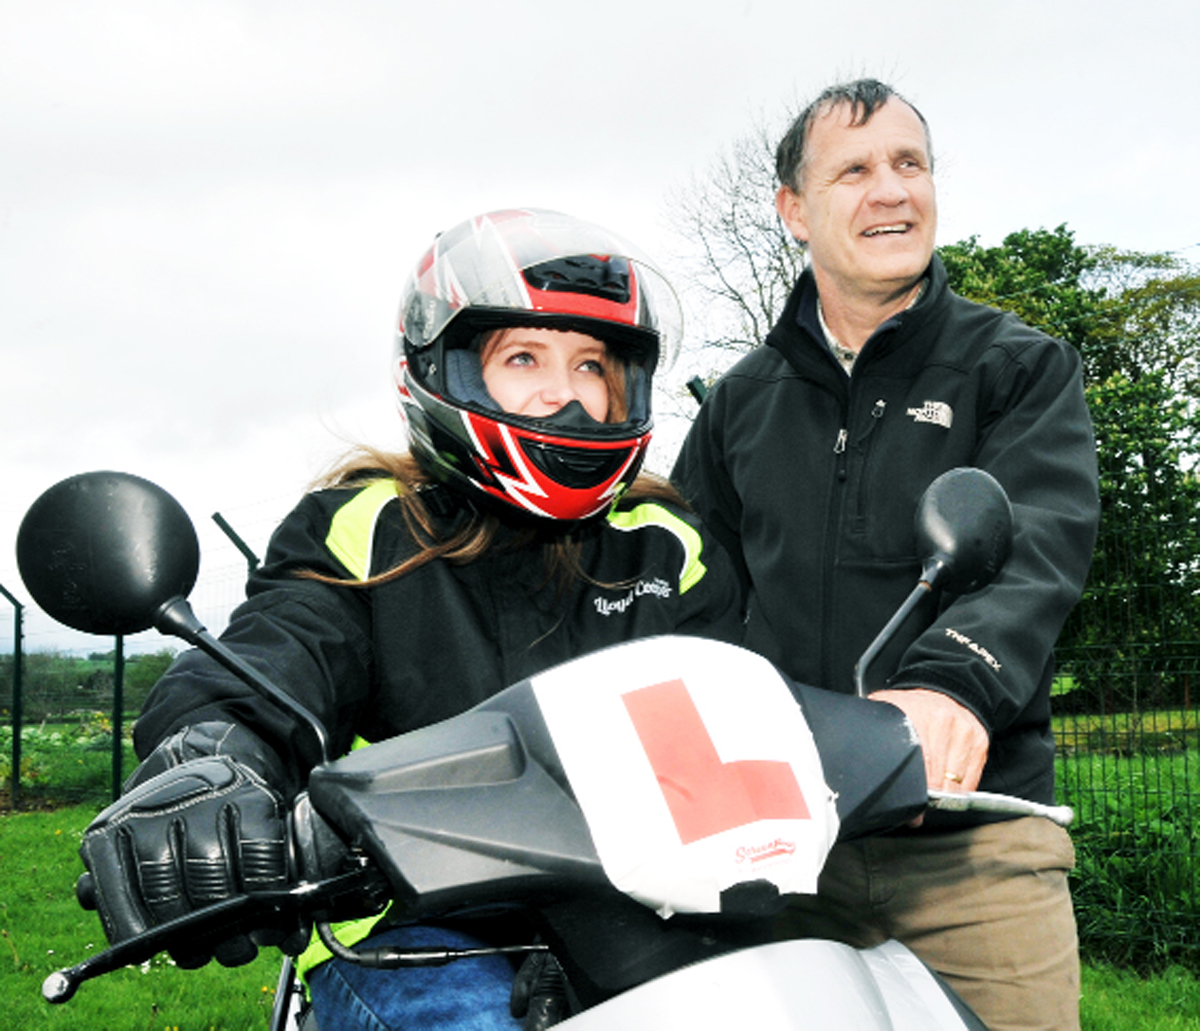 Asher Hamilton on her scooter with Pete Armitage of Inspira